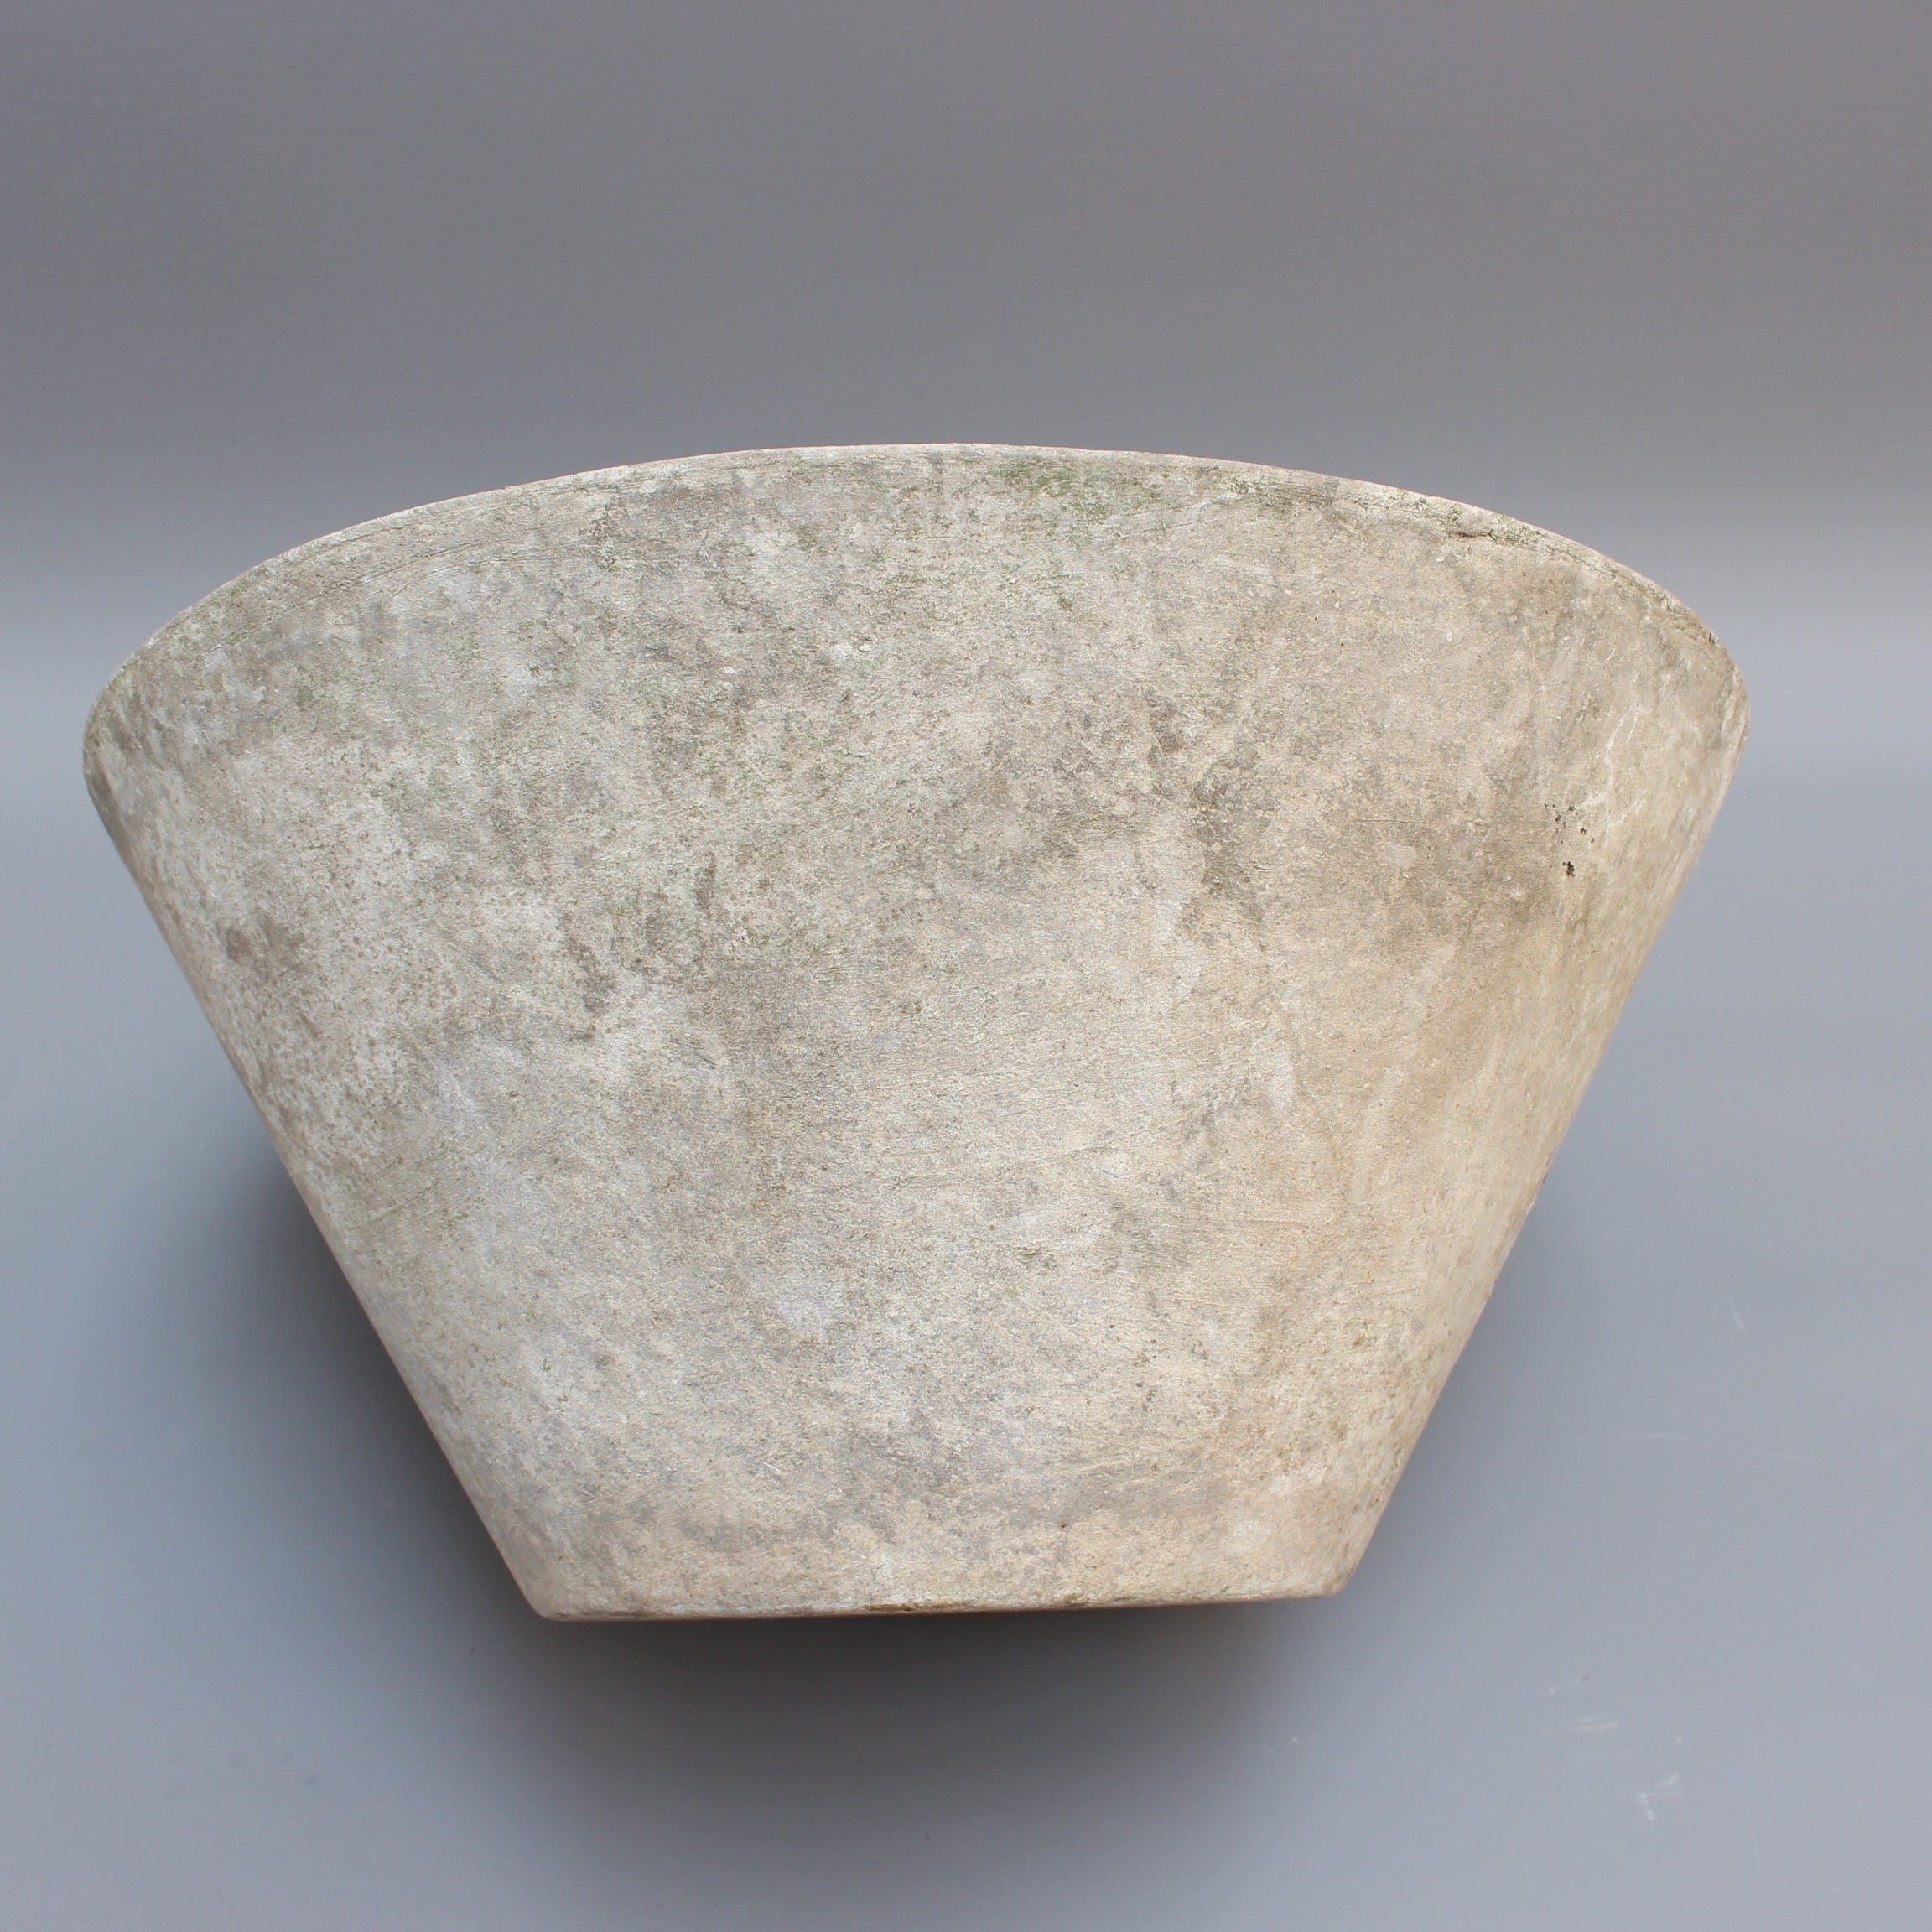 Cone-shaped planter attributed to Willy Guhl for Eternit (circa 1960s) - Small